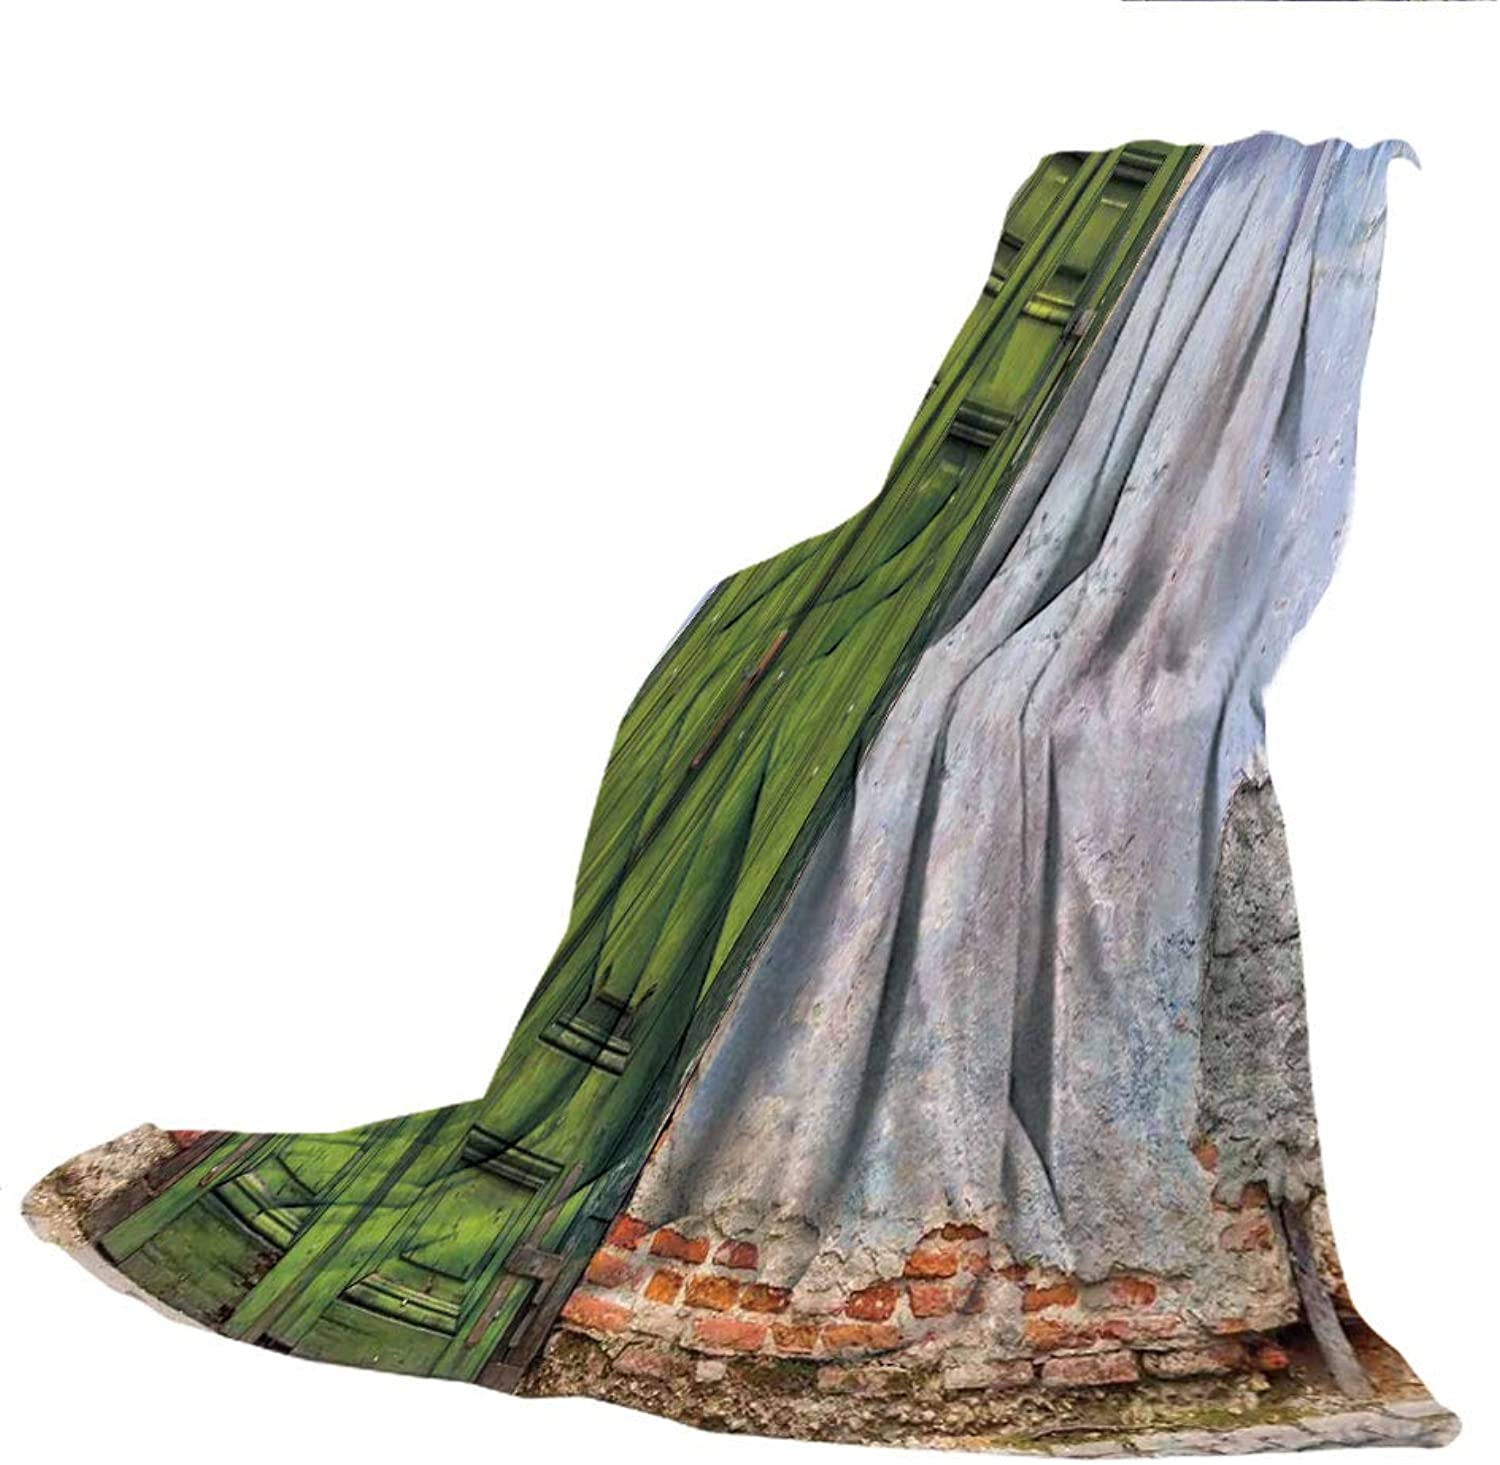 SCOCICI Blanket for Bed Couch Chair Fall Winter Spring Living Room,Rustic Decor,colord House with A Pastel Weathered Rustic Door Old Days Back Then Buildings Photo,bluee Green,59.06  W x 86.62  H